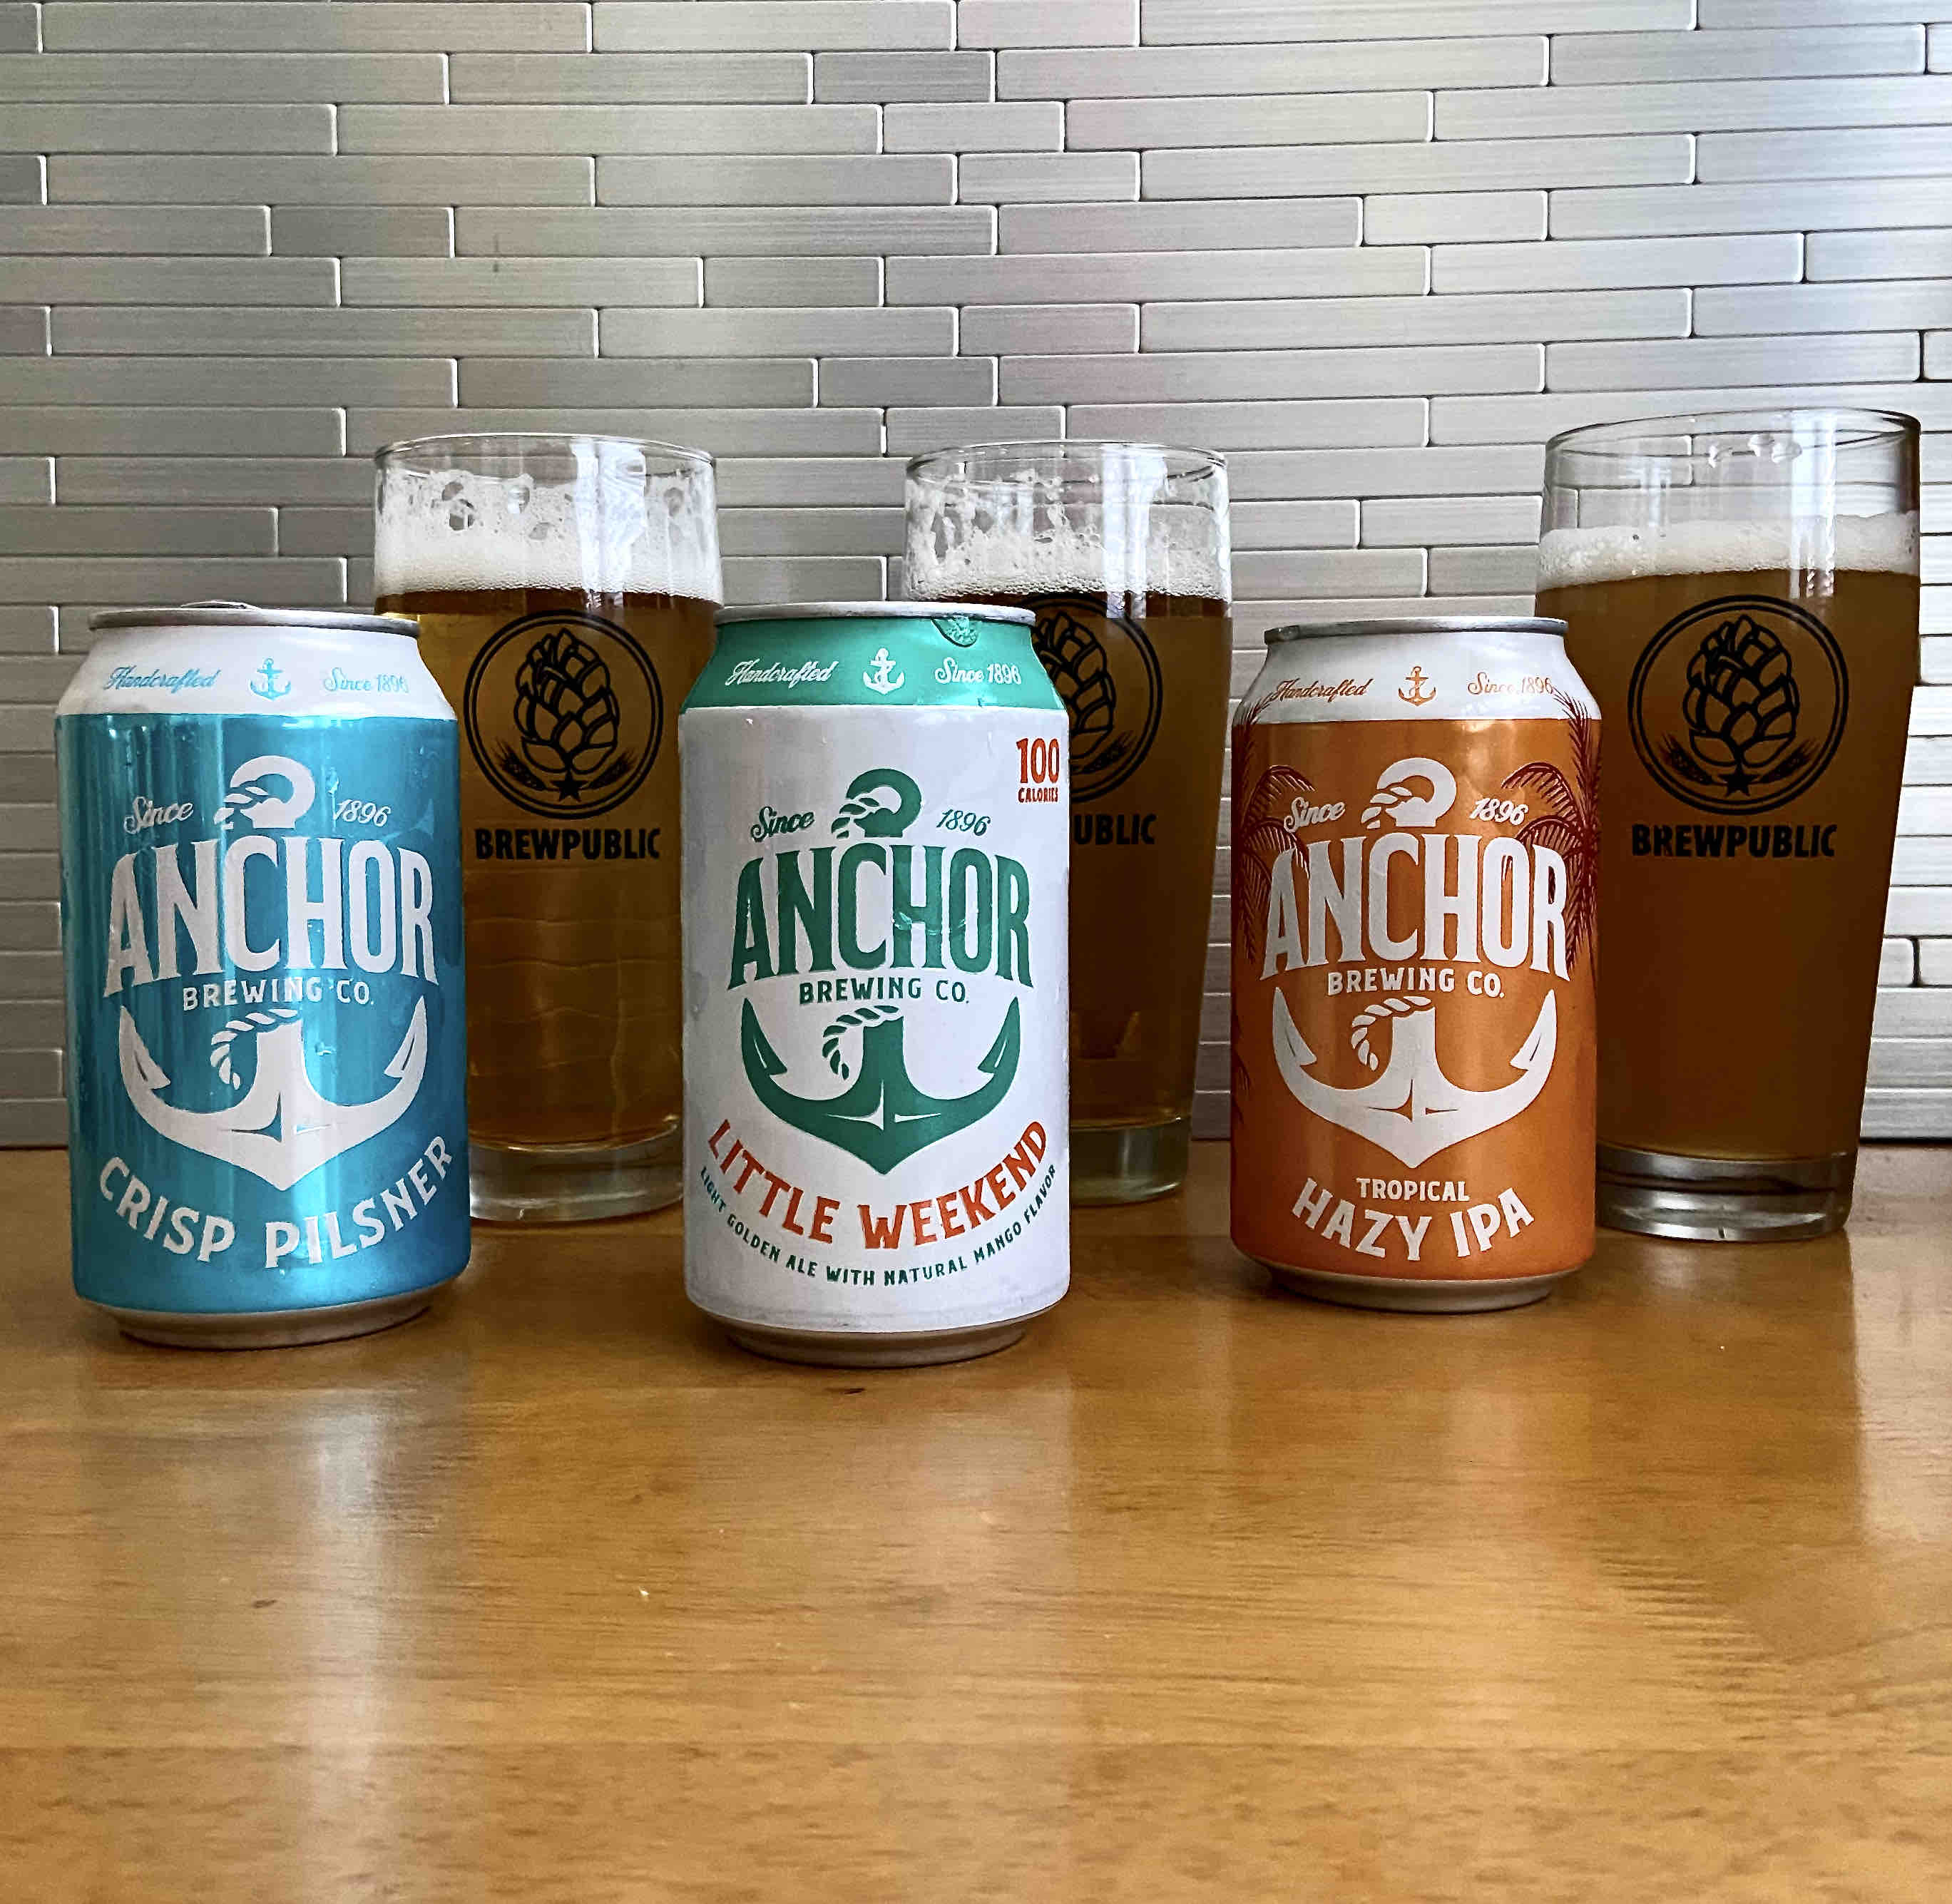 Anchor Brewing releases Crisp Pilsner, Little Weekend, and Tropical Hazy IPA in 12oz cans.